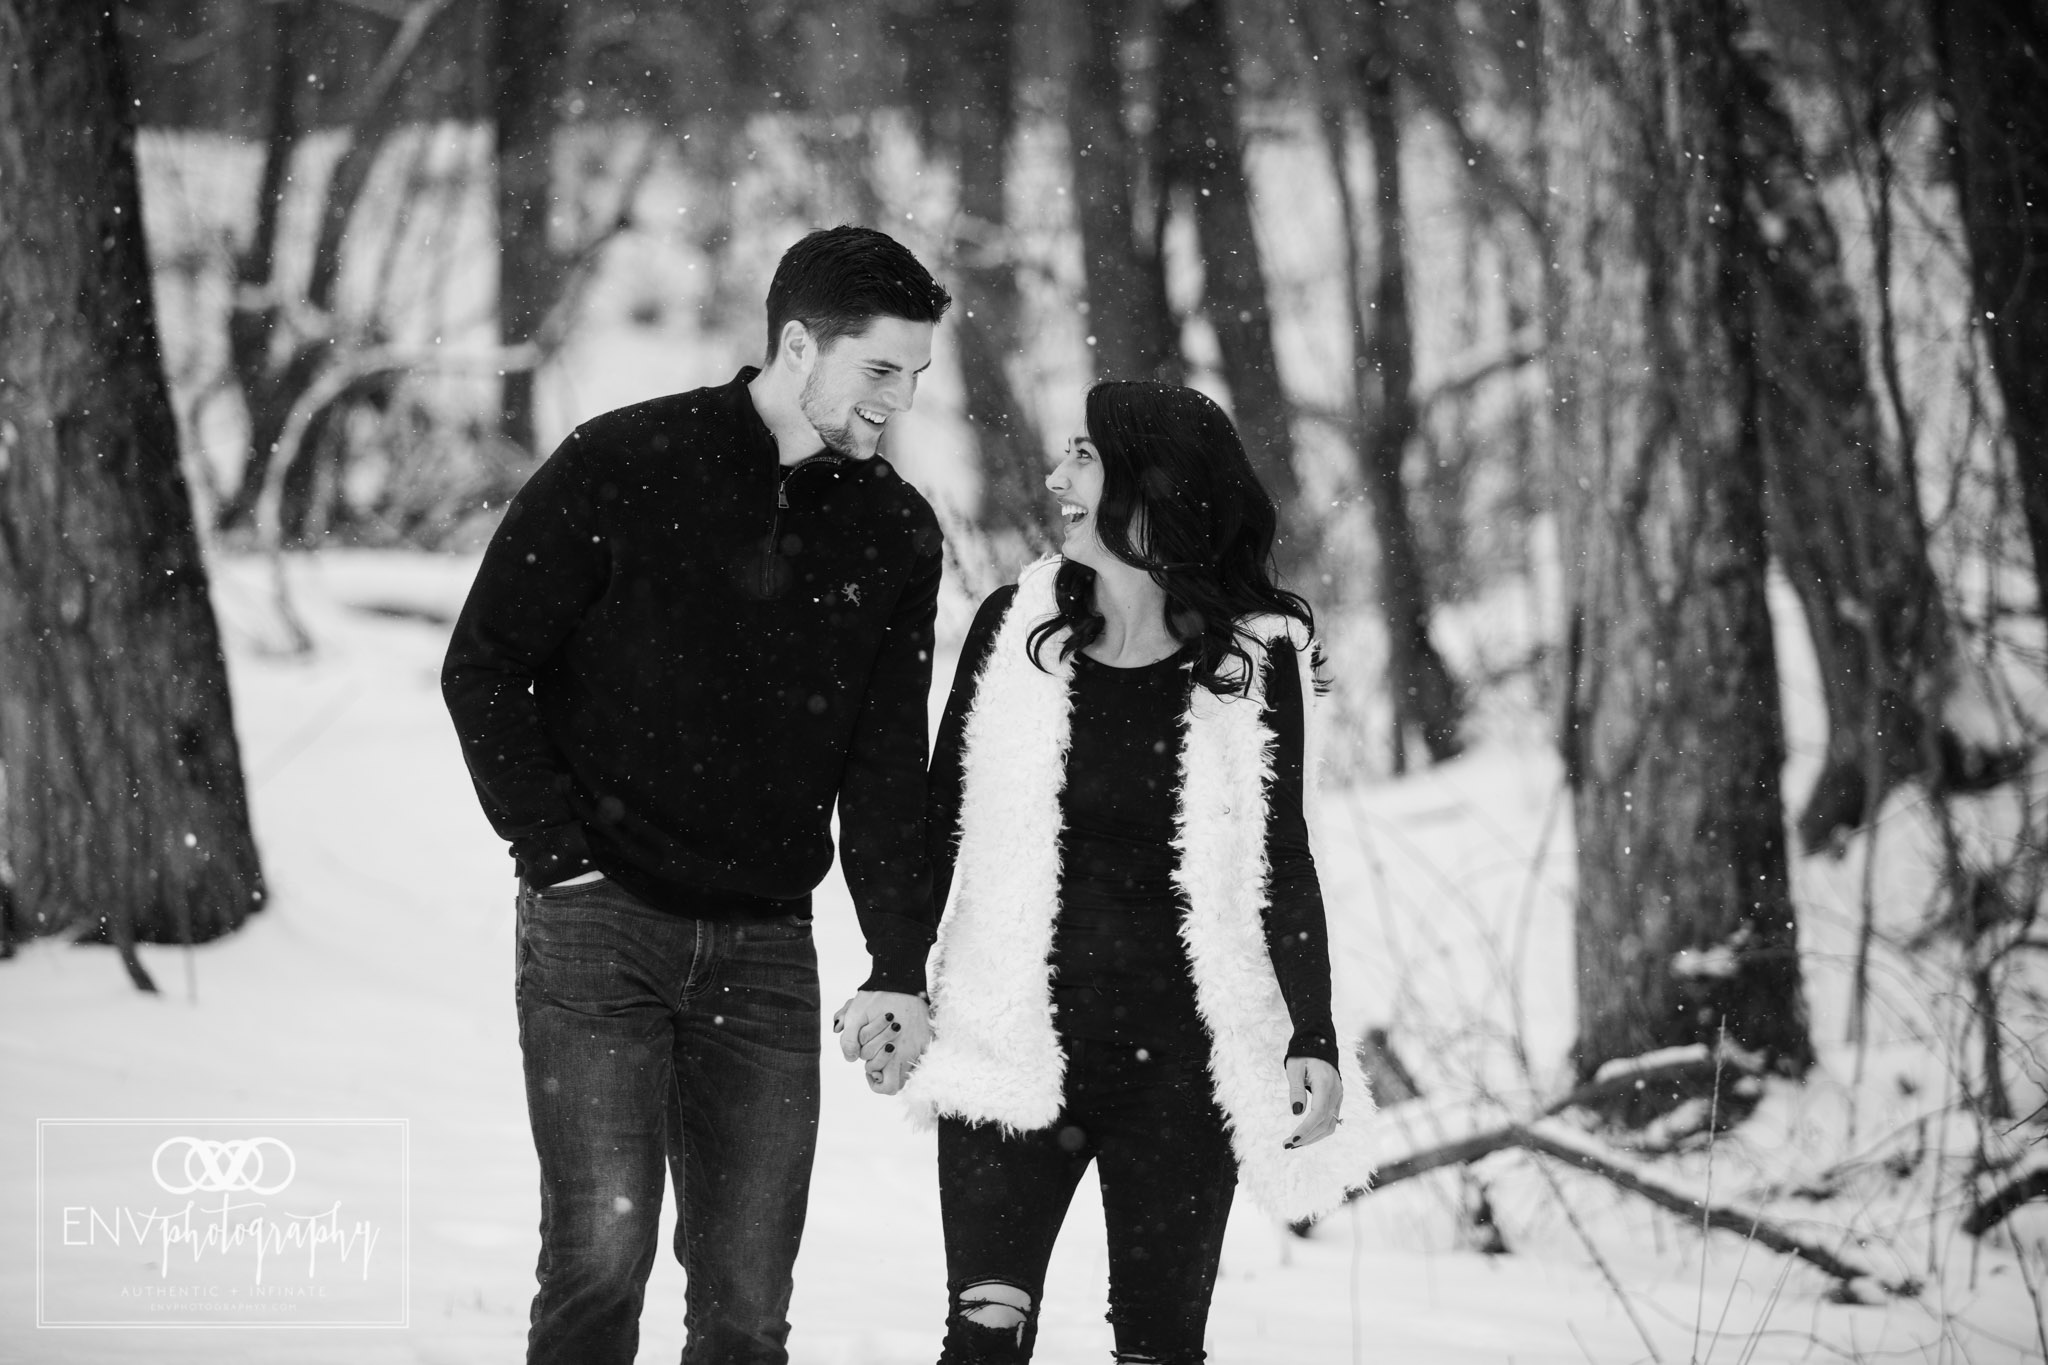 columbus ohio mount vernon ohio winter snowy family engagement photography (1).jpg